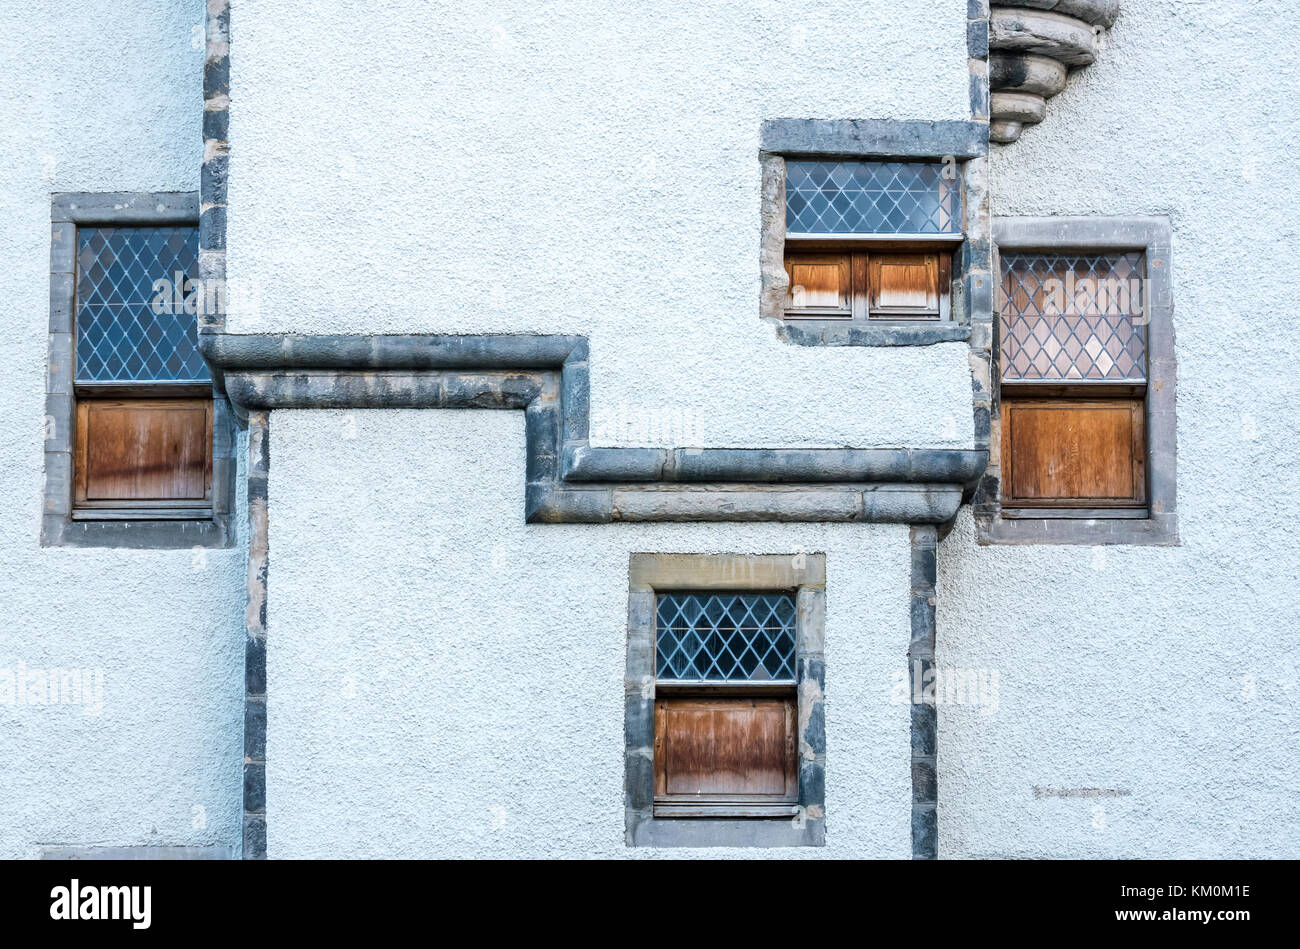 quirky-lattice-windows-with-shutters-17t